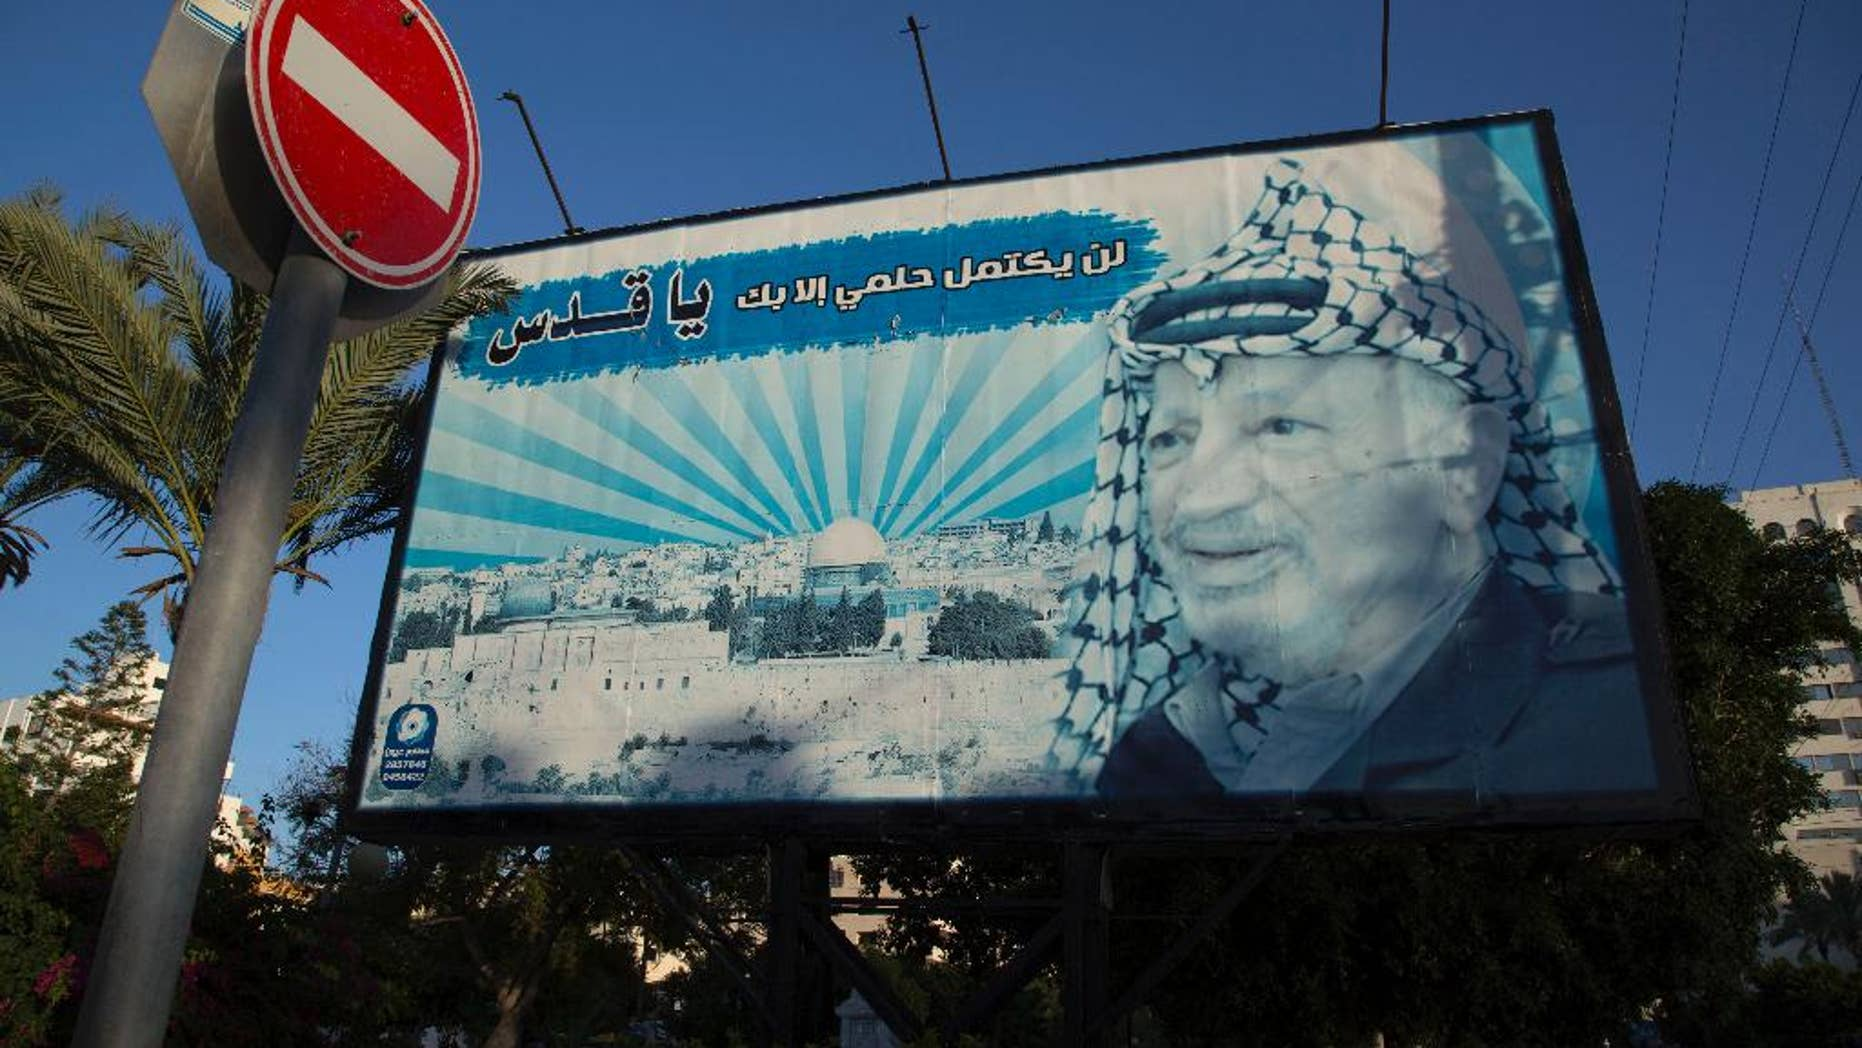 "A billboard with a picture of the former Palestinian leader Yasser Arafat is seen with Arabic writing that reads, ""My dream will not be complete without Al-Quds,"" in Gaza City, Sunday, Nov. 9, 2014. The Hamas militant group on Sunday forced the cancellation of a memorial ceremony that was to have marked the 10th anniversary of the death of Palestinian leader Yasser Arafat, underscoring the lingering tensions with the rival Fatah movement despite the formation of a unity government meant to end years of hostilities. (AP Photo/Khalil Hamra)"